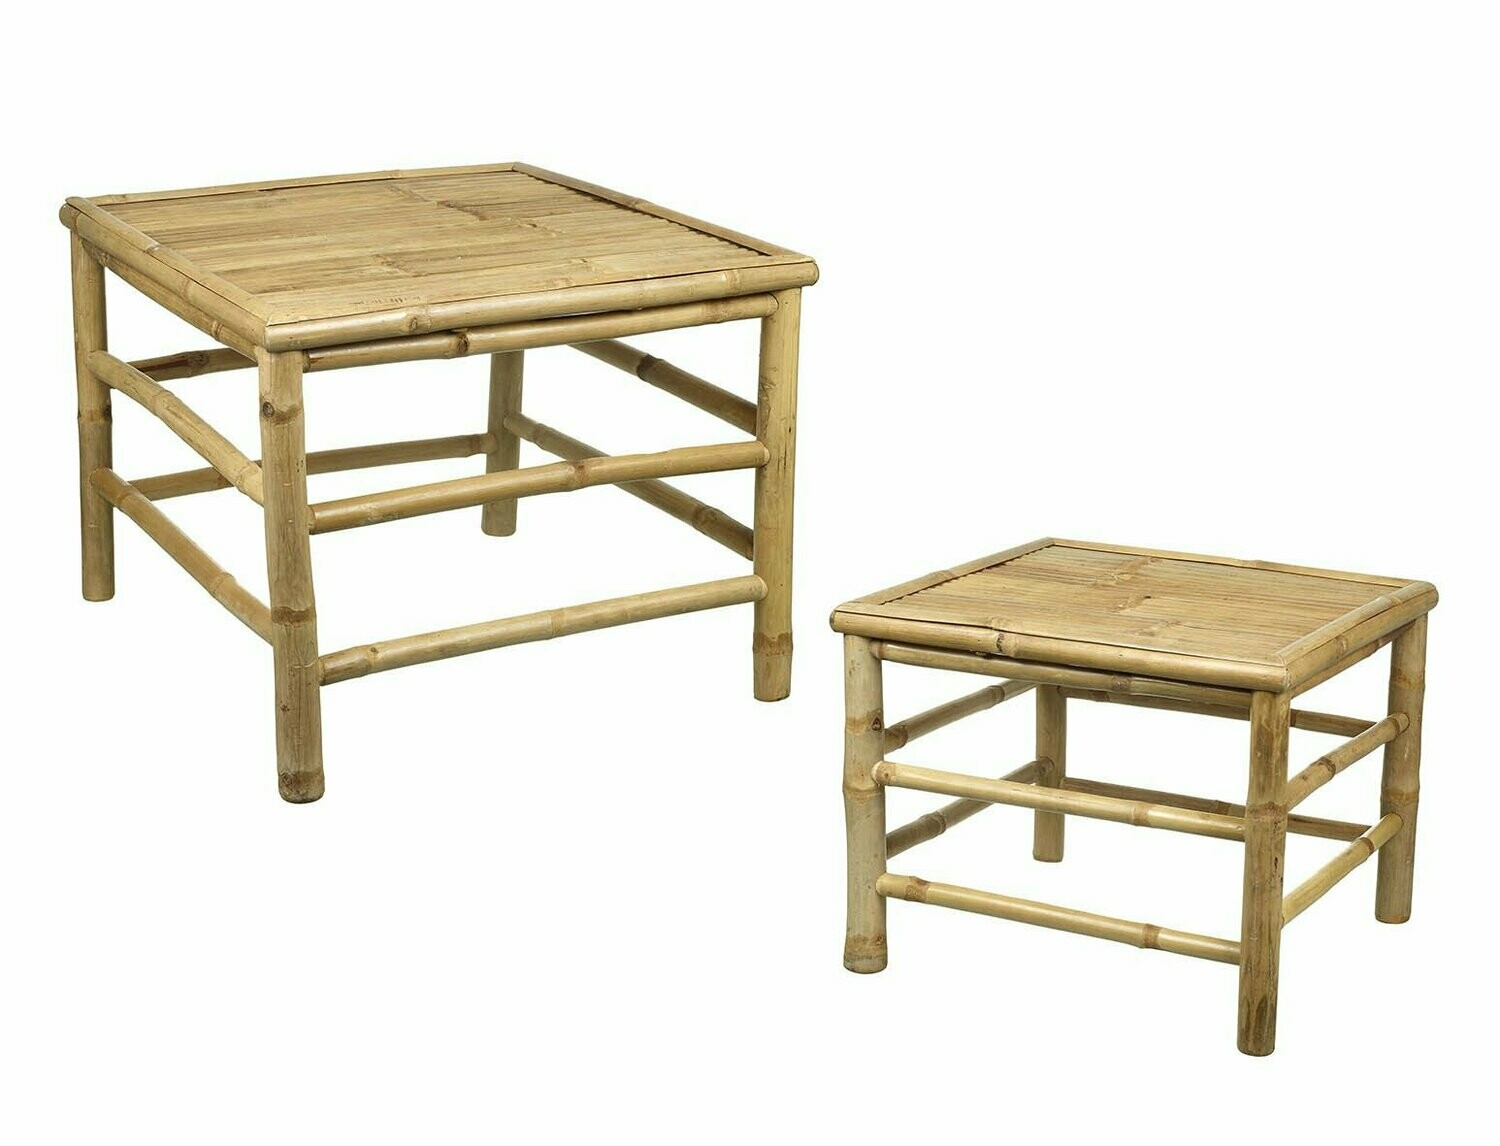 Bamboo side table - Large